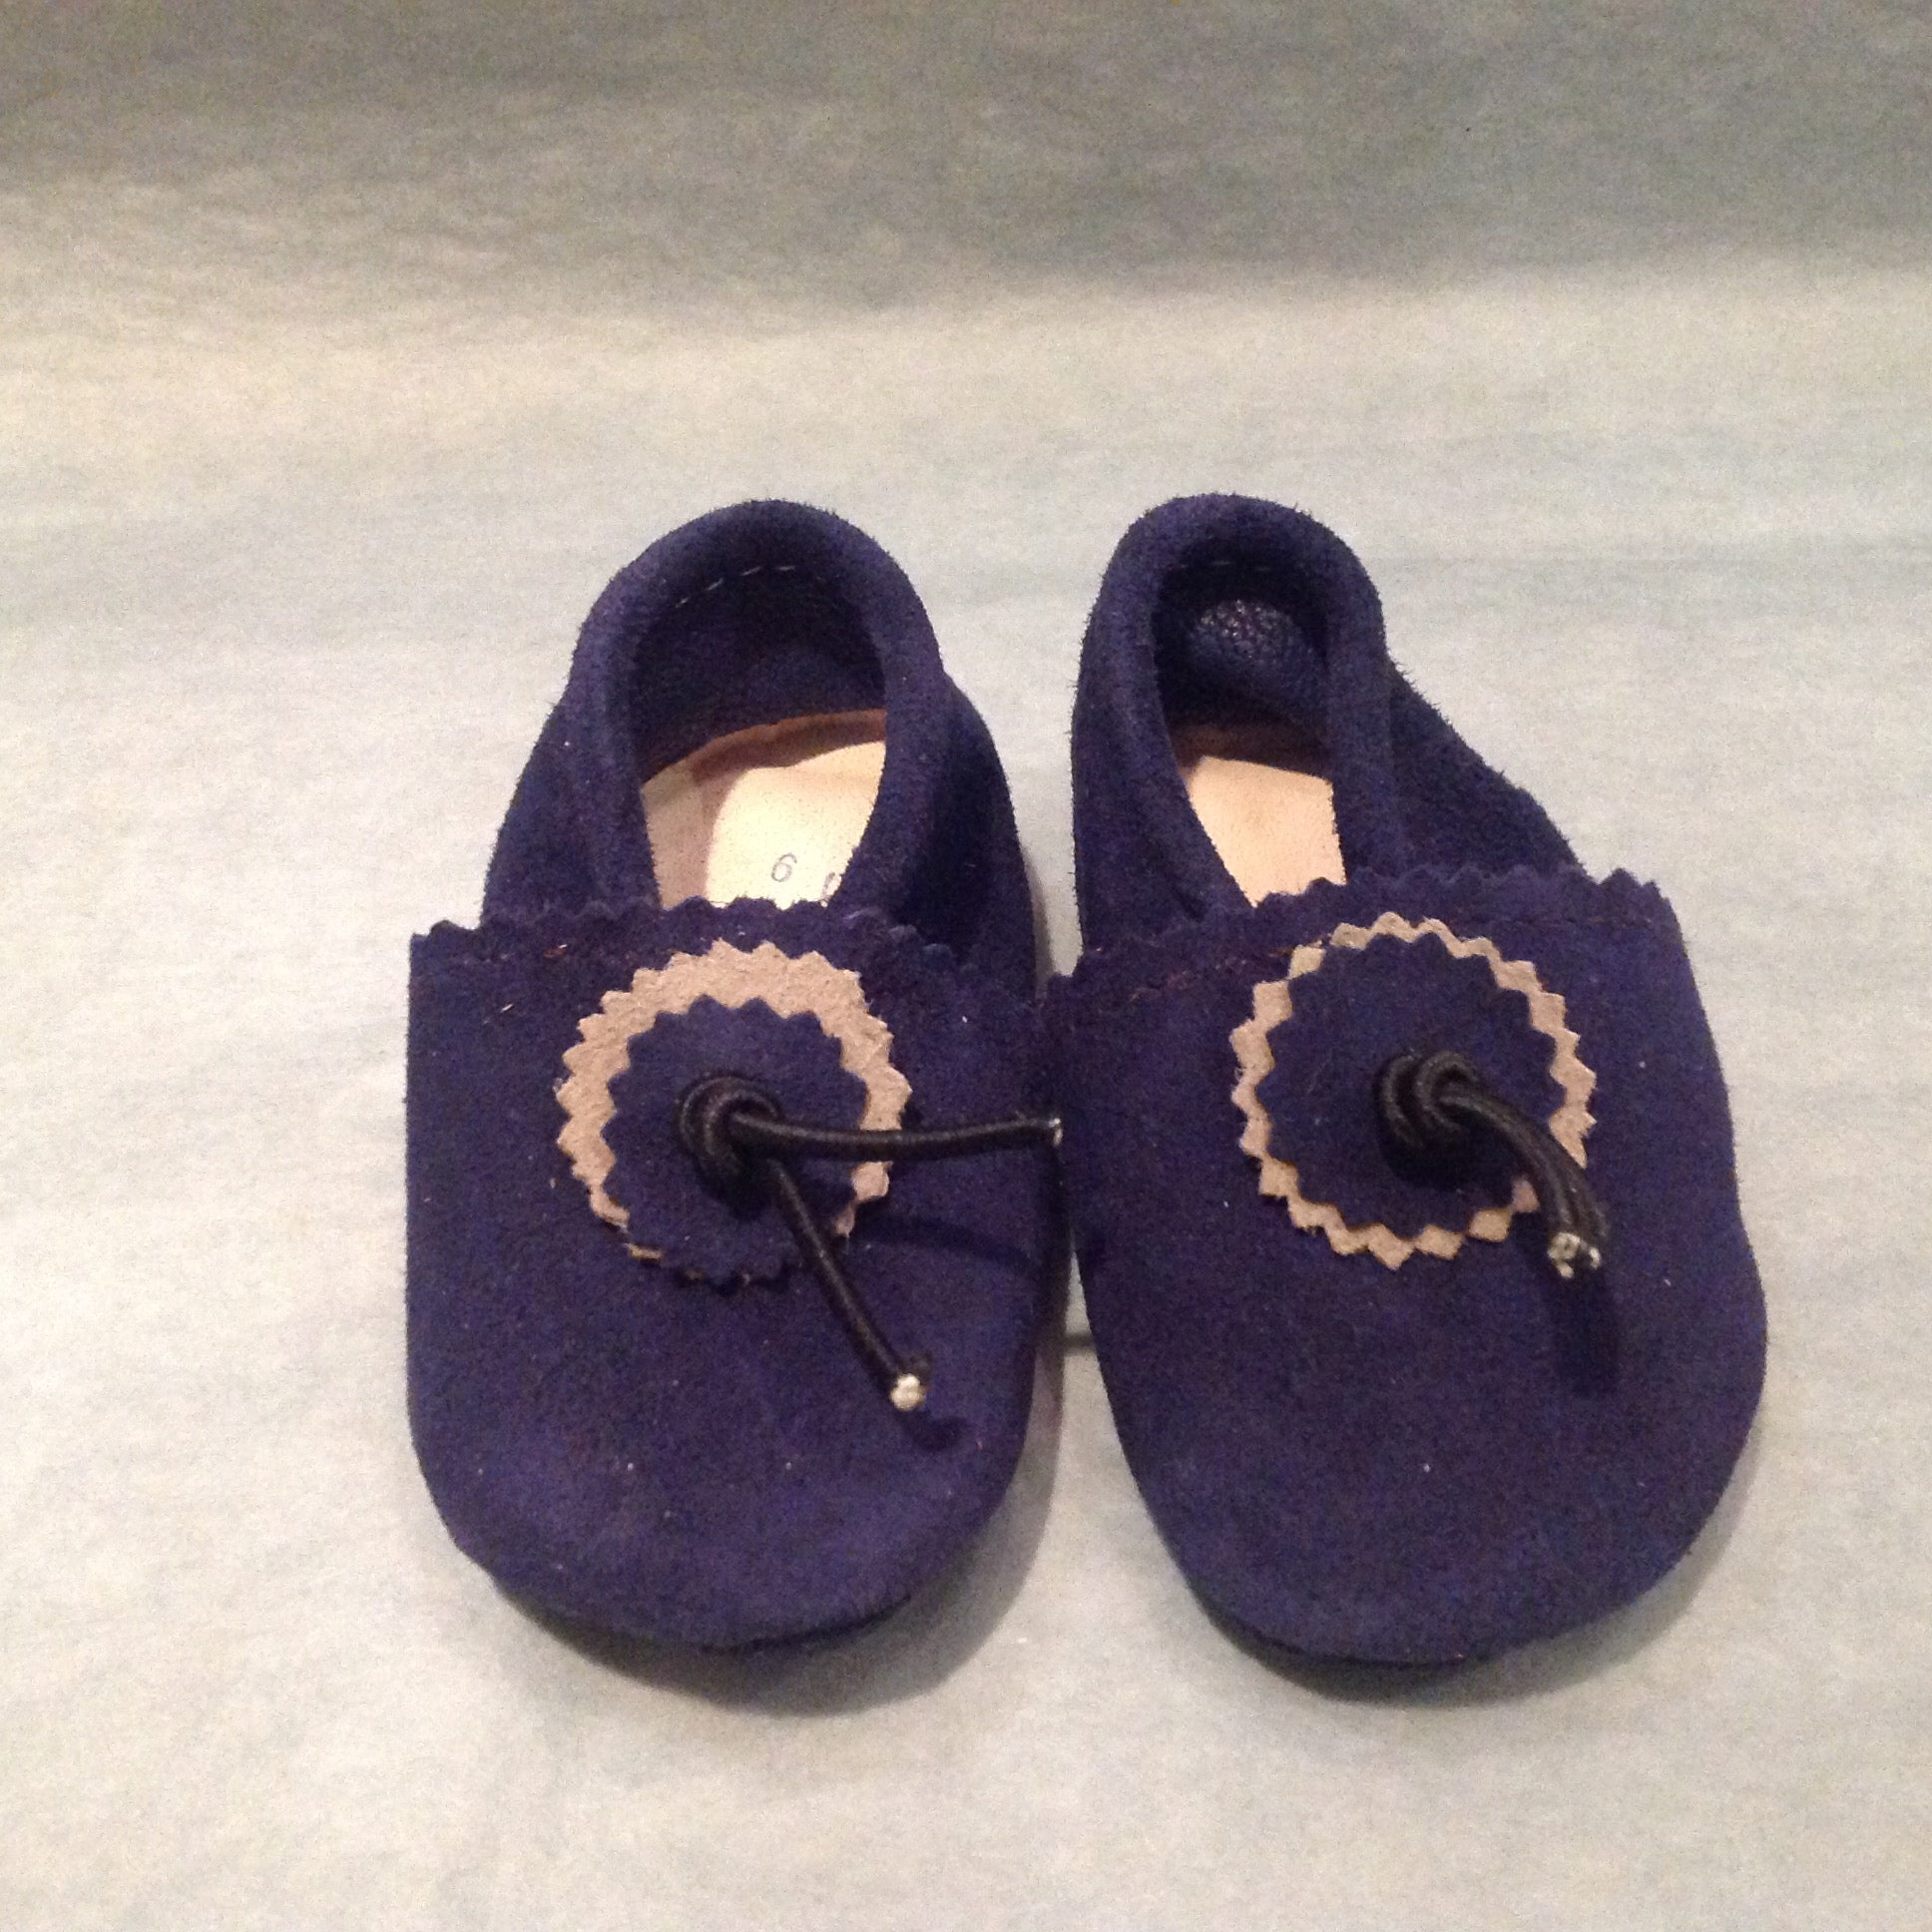 Baby Suede Slippers FF-Slippers-MODA MEDINA